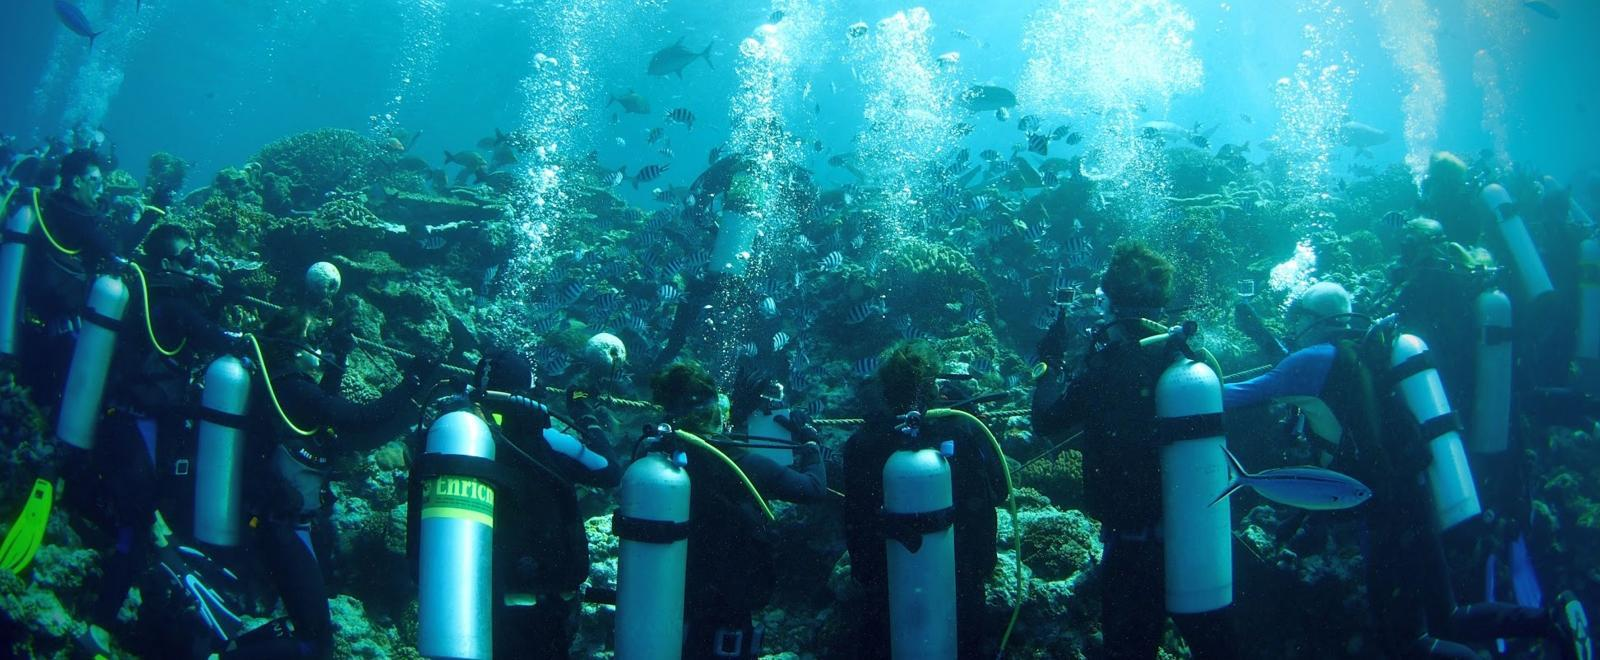 Volunteers scuba dive during our Shark Conservation Project in Fiji for high school students